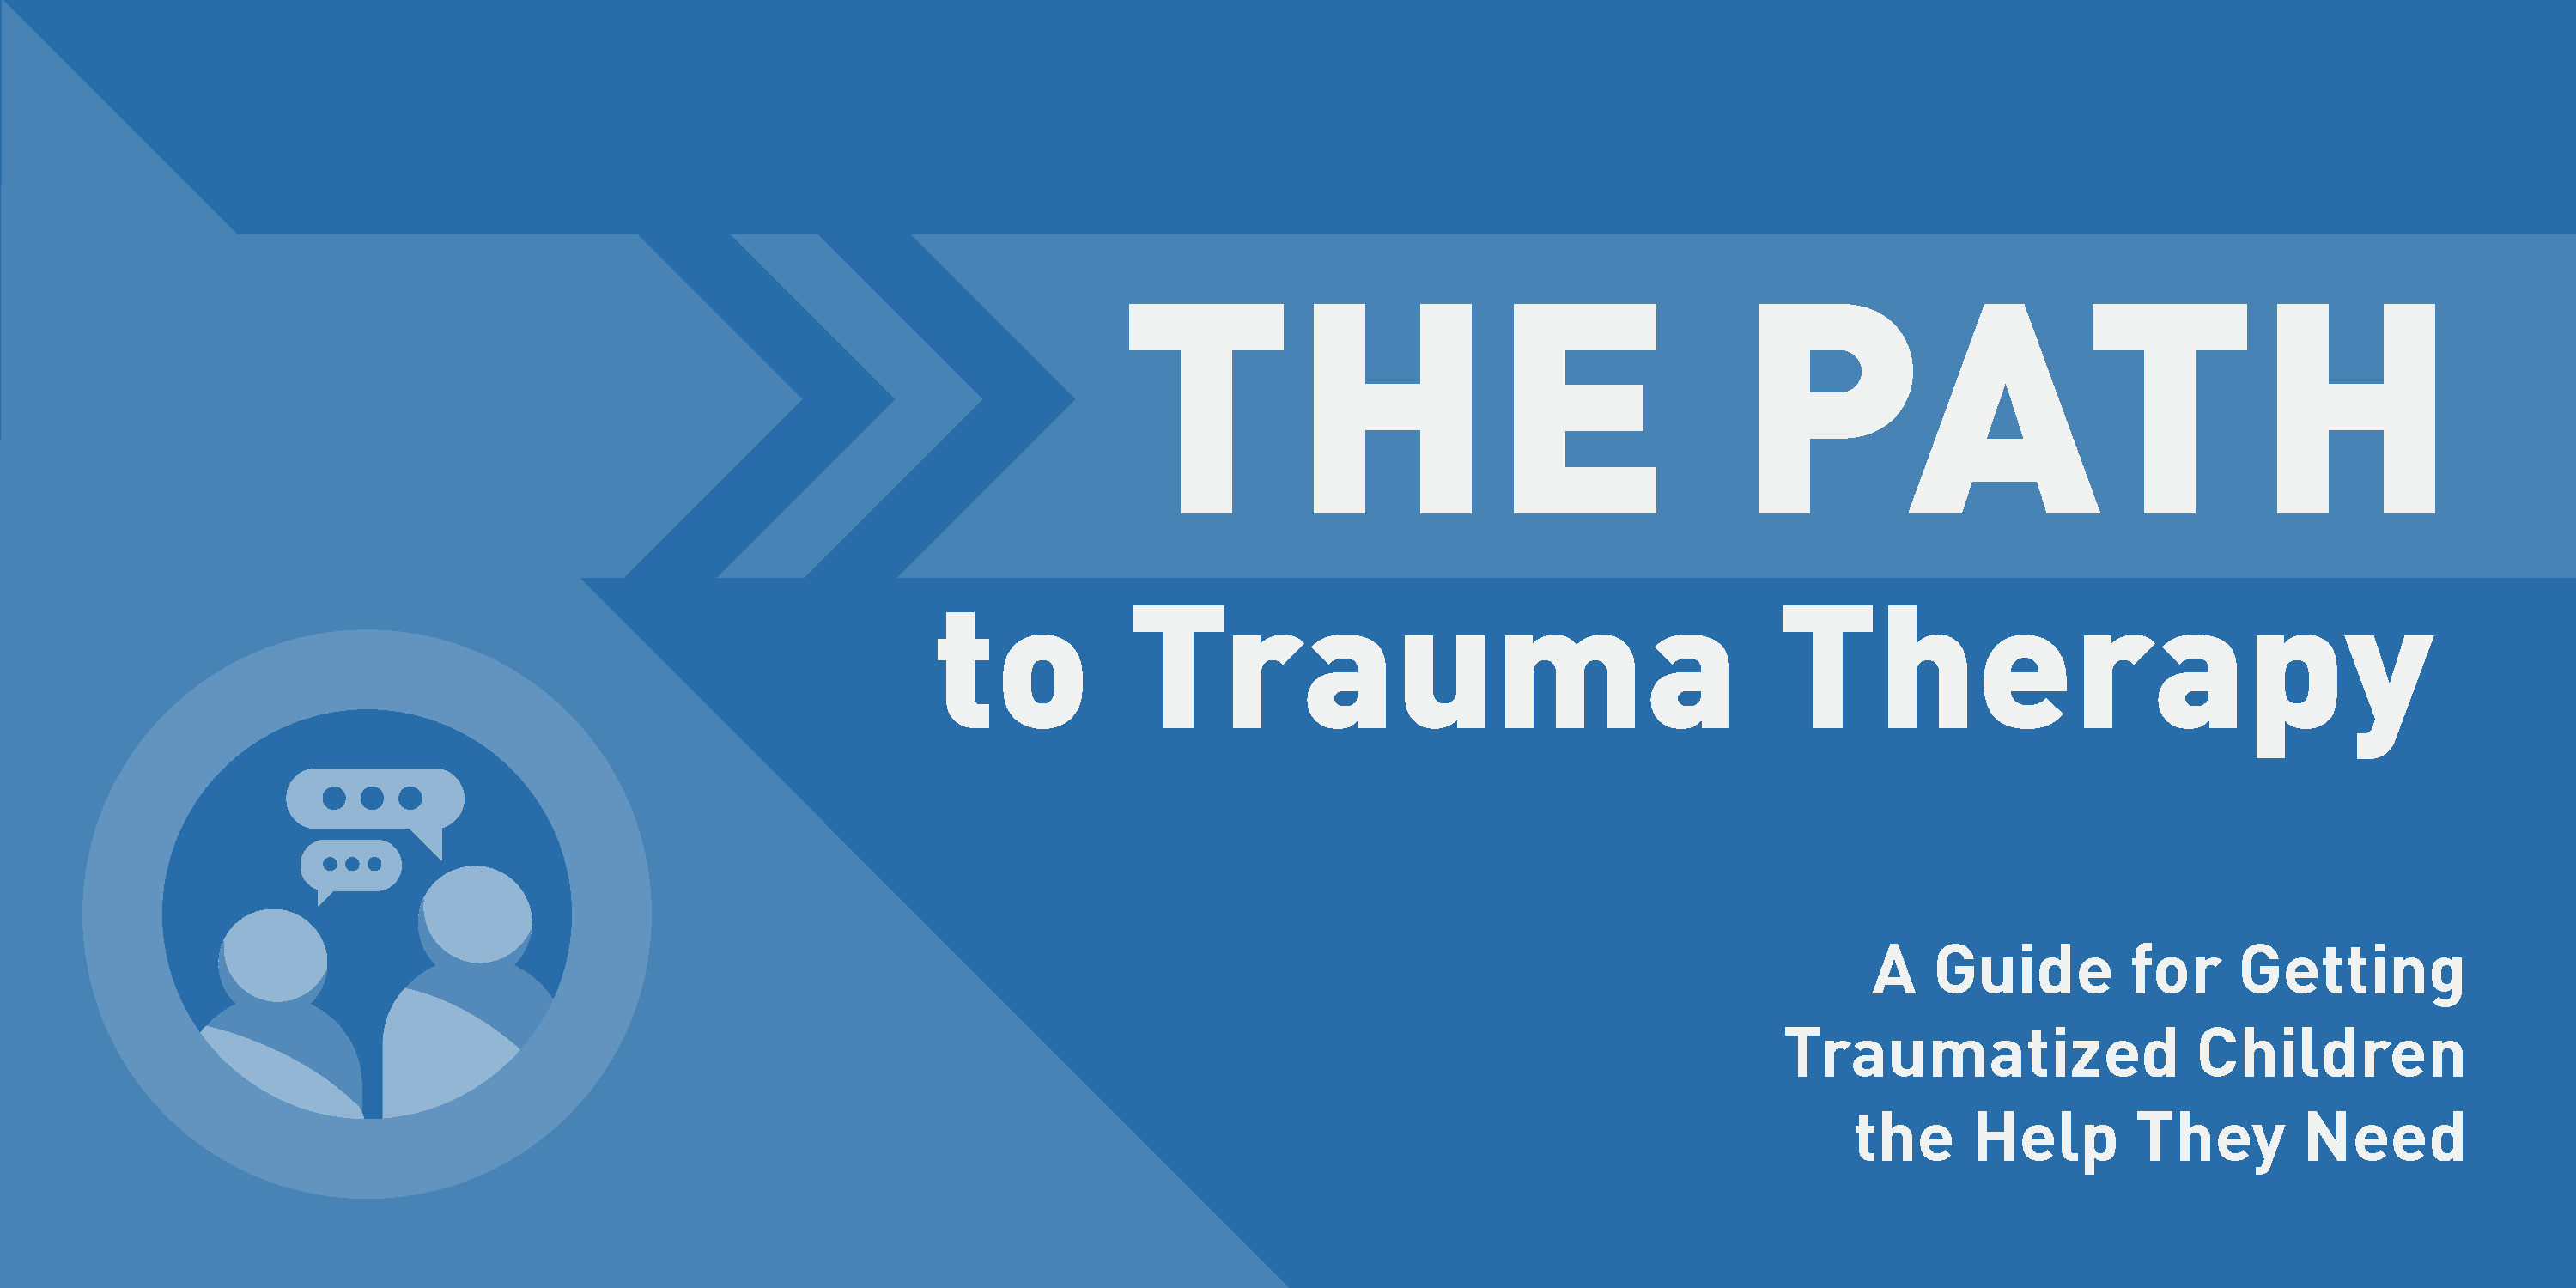 The PATH to Trauma Therapy: A Guide for Getting Traumatized Children the Help They Need Brochure Cover